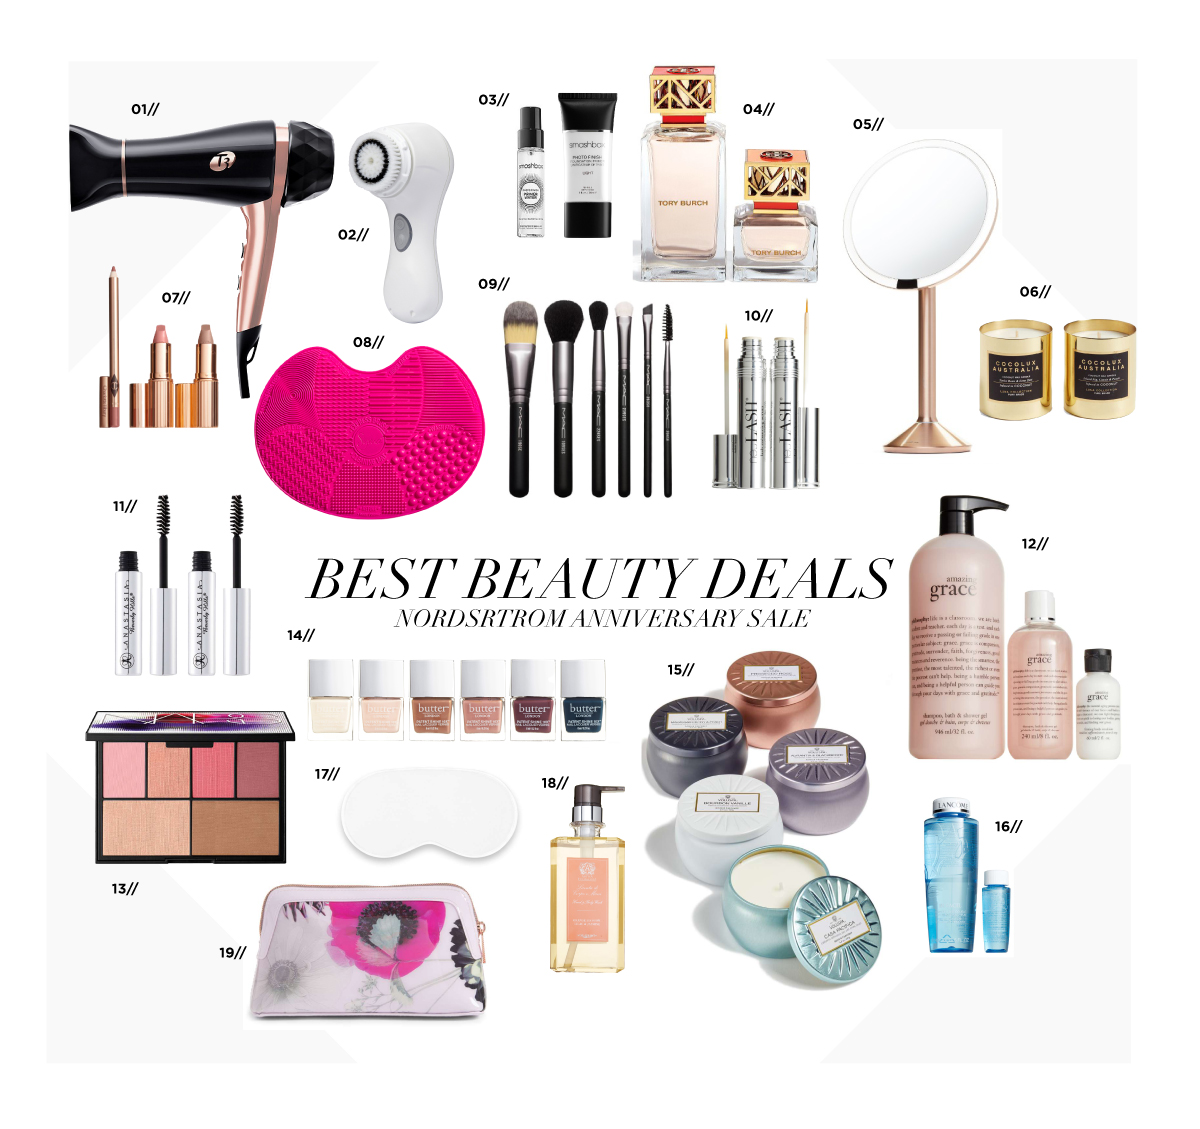 NORDSTROM ANNIVERSARY SALE: BEST BEAUTY SALE EXCLUSIVES | Cella Jane